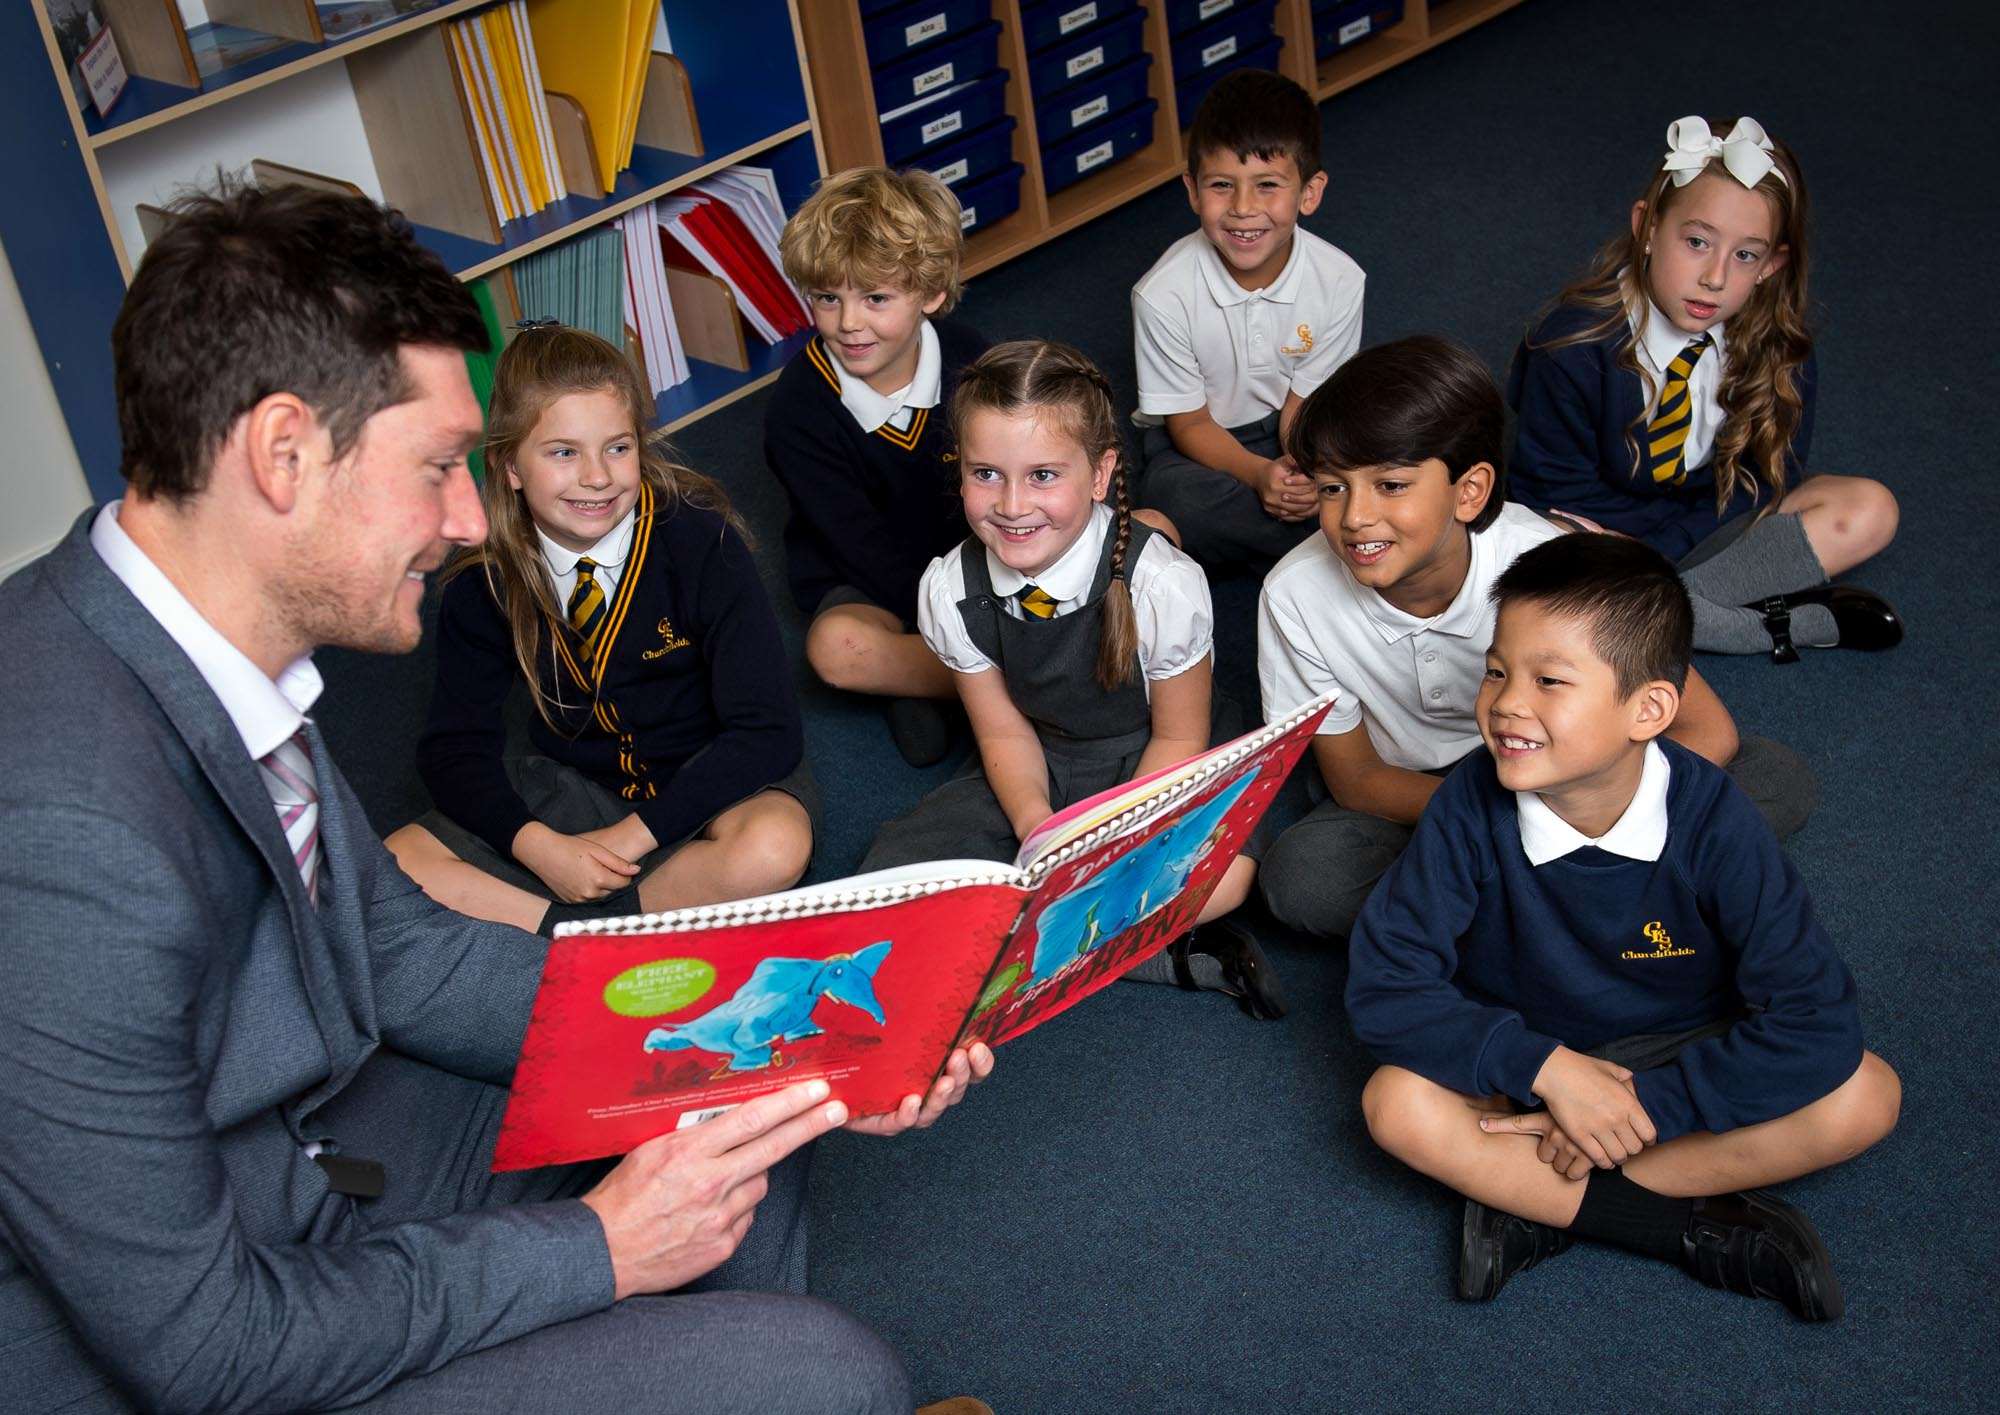 Mr Warmoth reading a book for children sitting on the floor